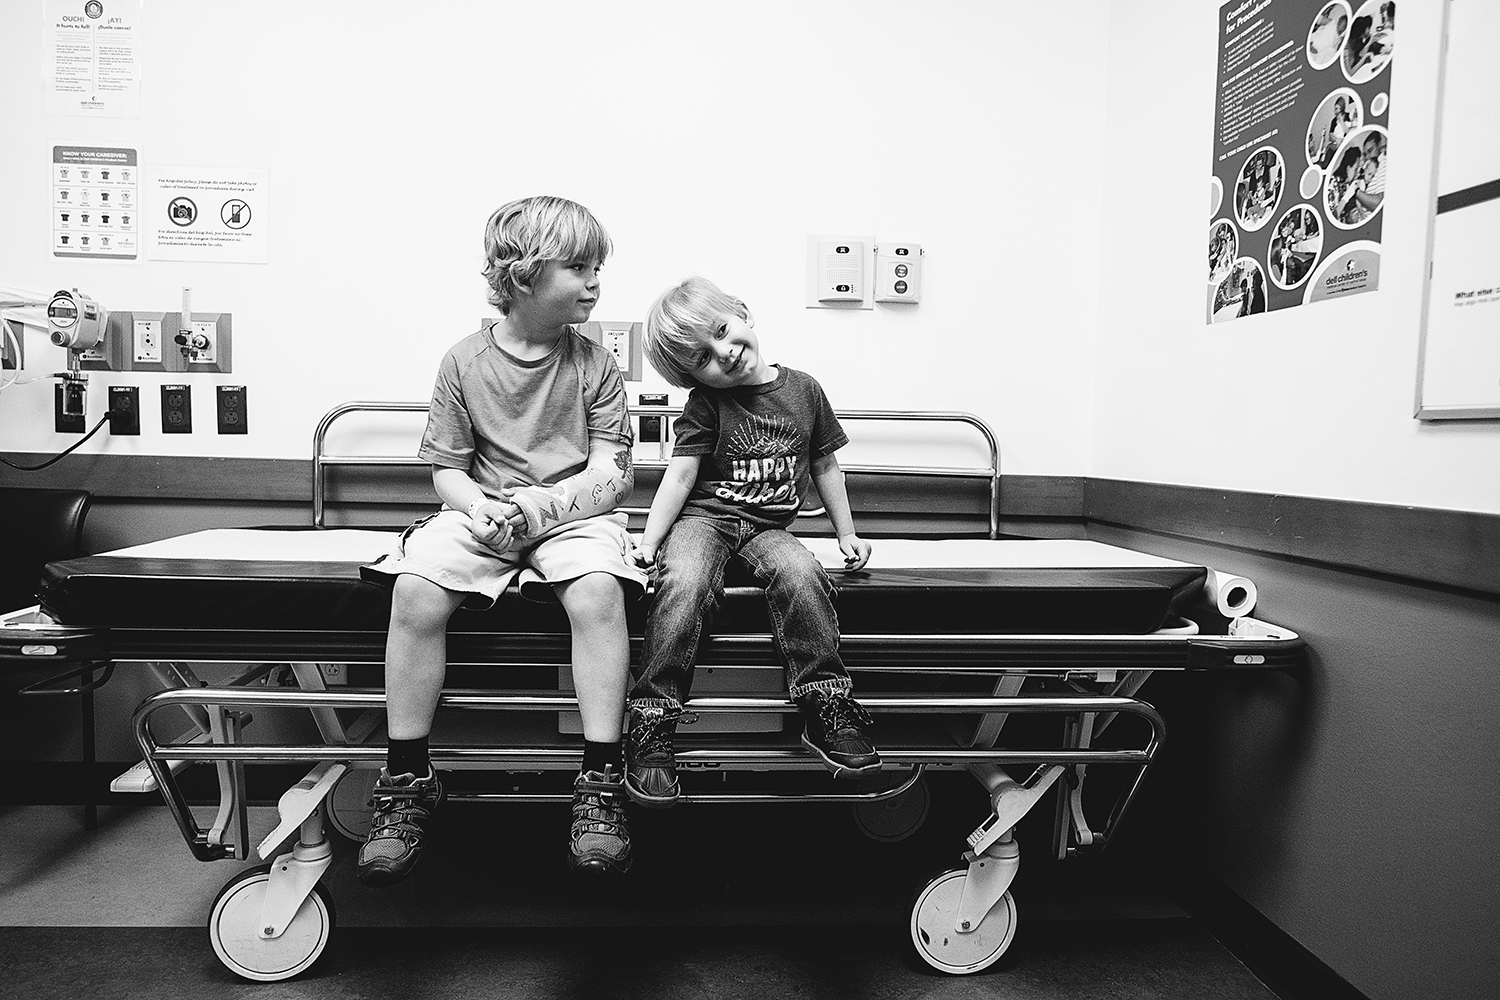 photo of boys sitting in hospital room on bed